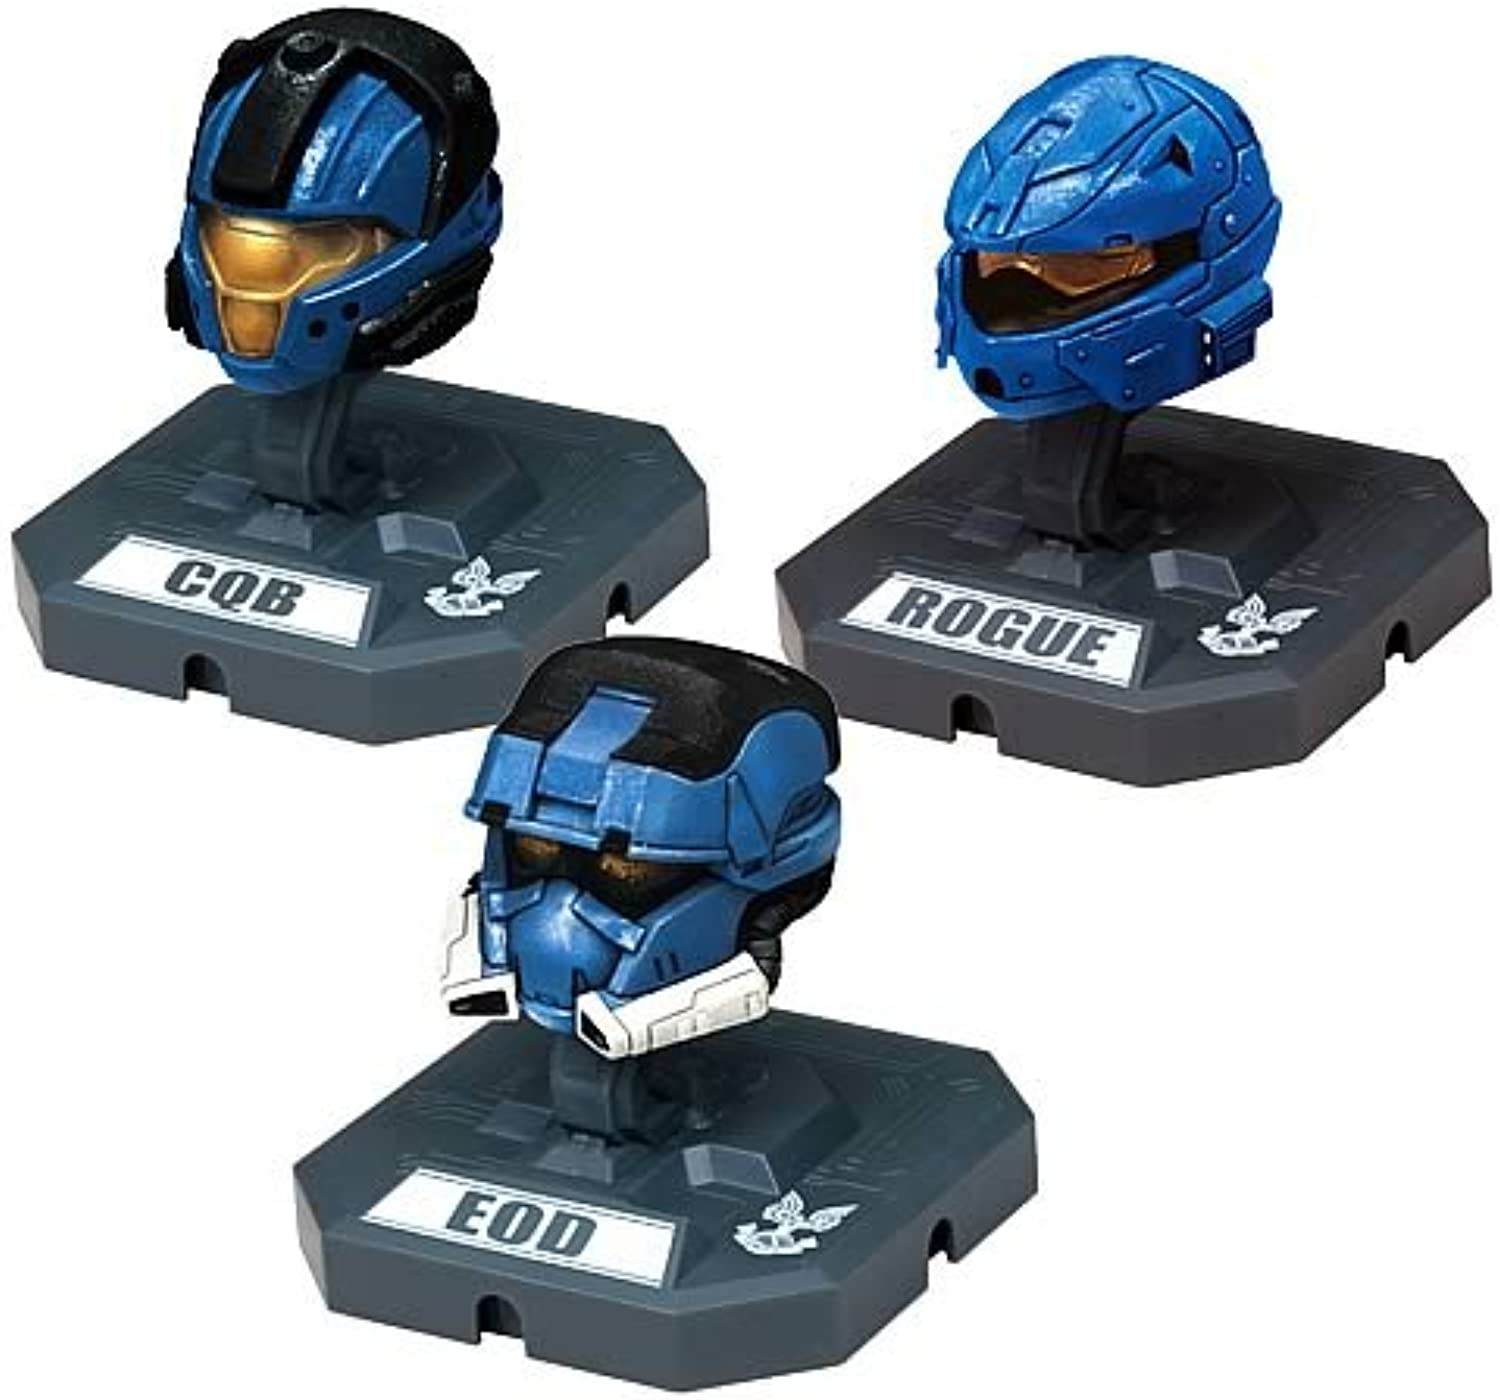 Halo Helmet Collection Series 2  CQB, Rogue, EOD